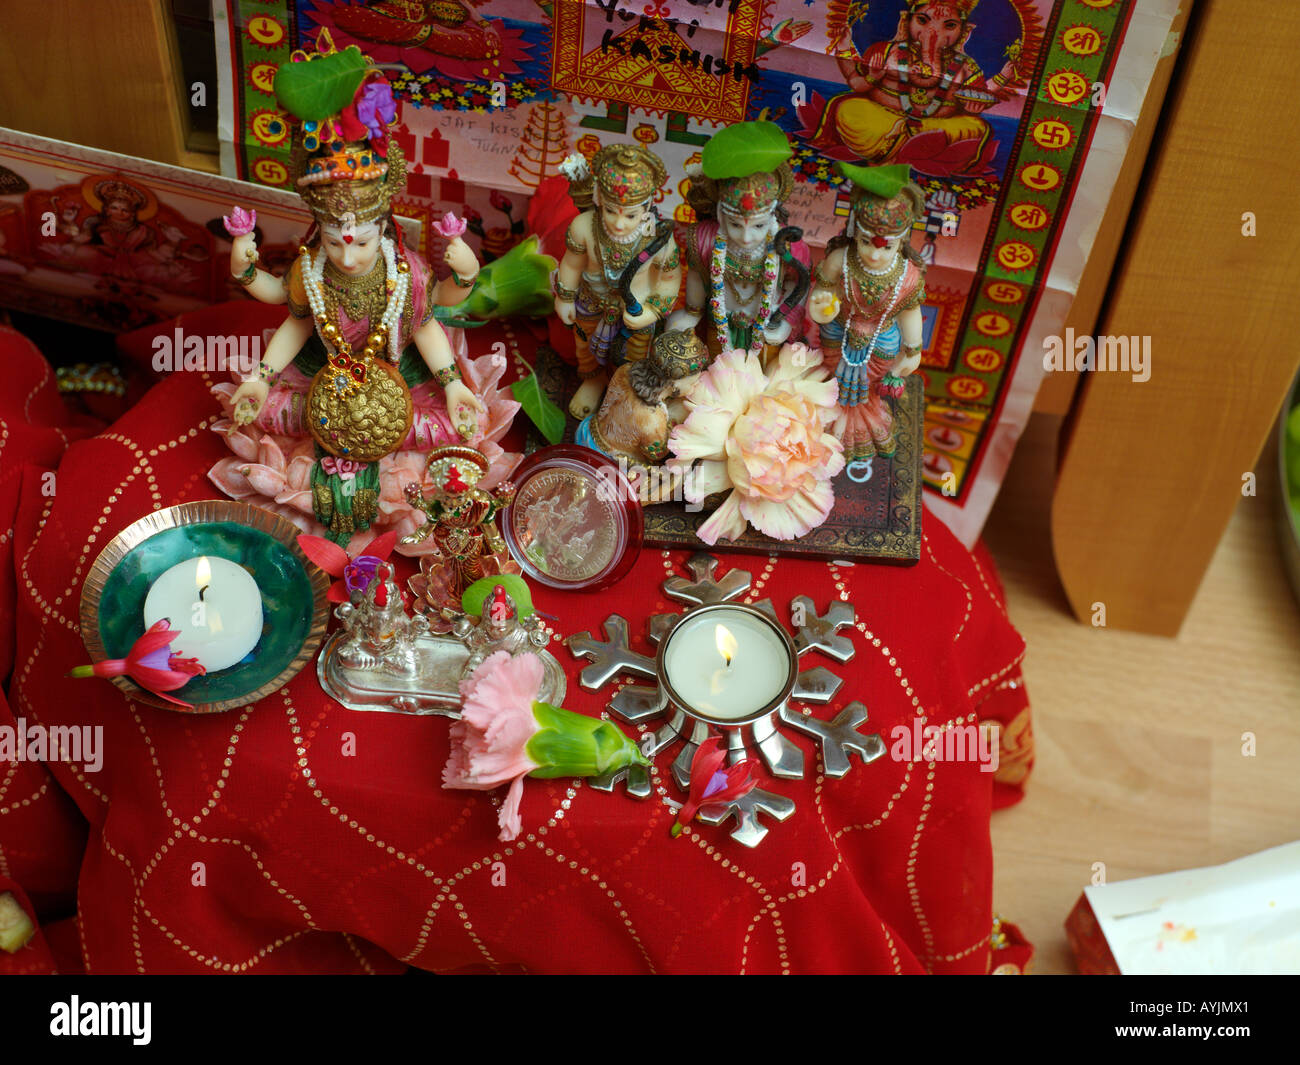 Diwali Decorations Gods Flowers and Candles Tooting London England - Stock Image